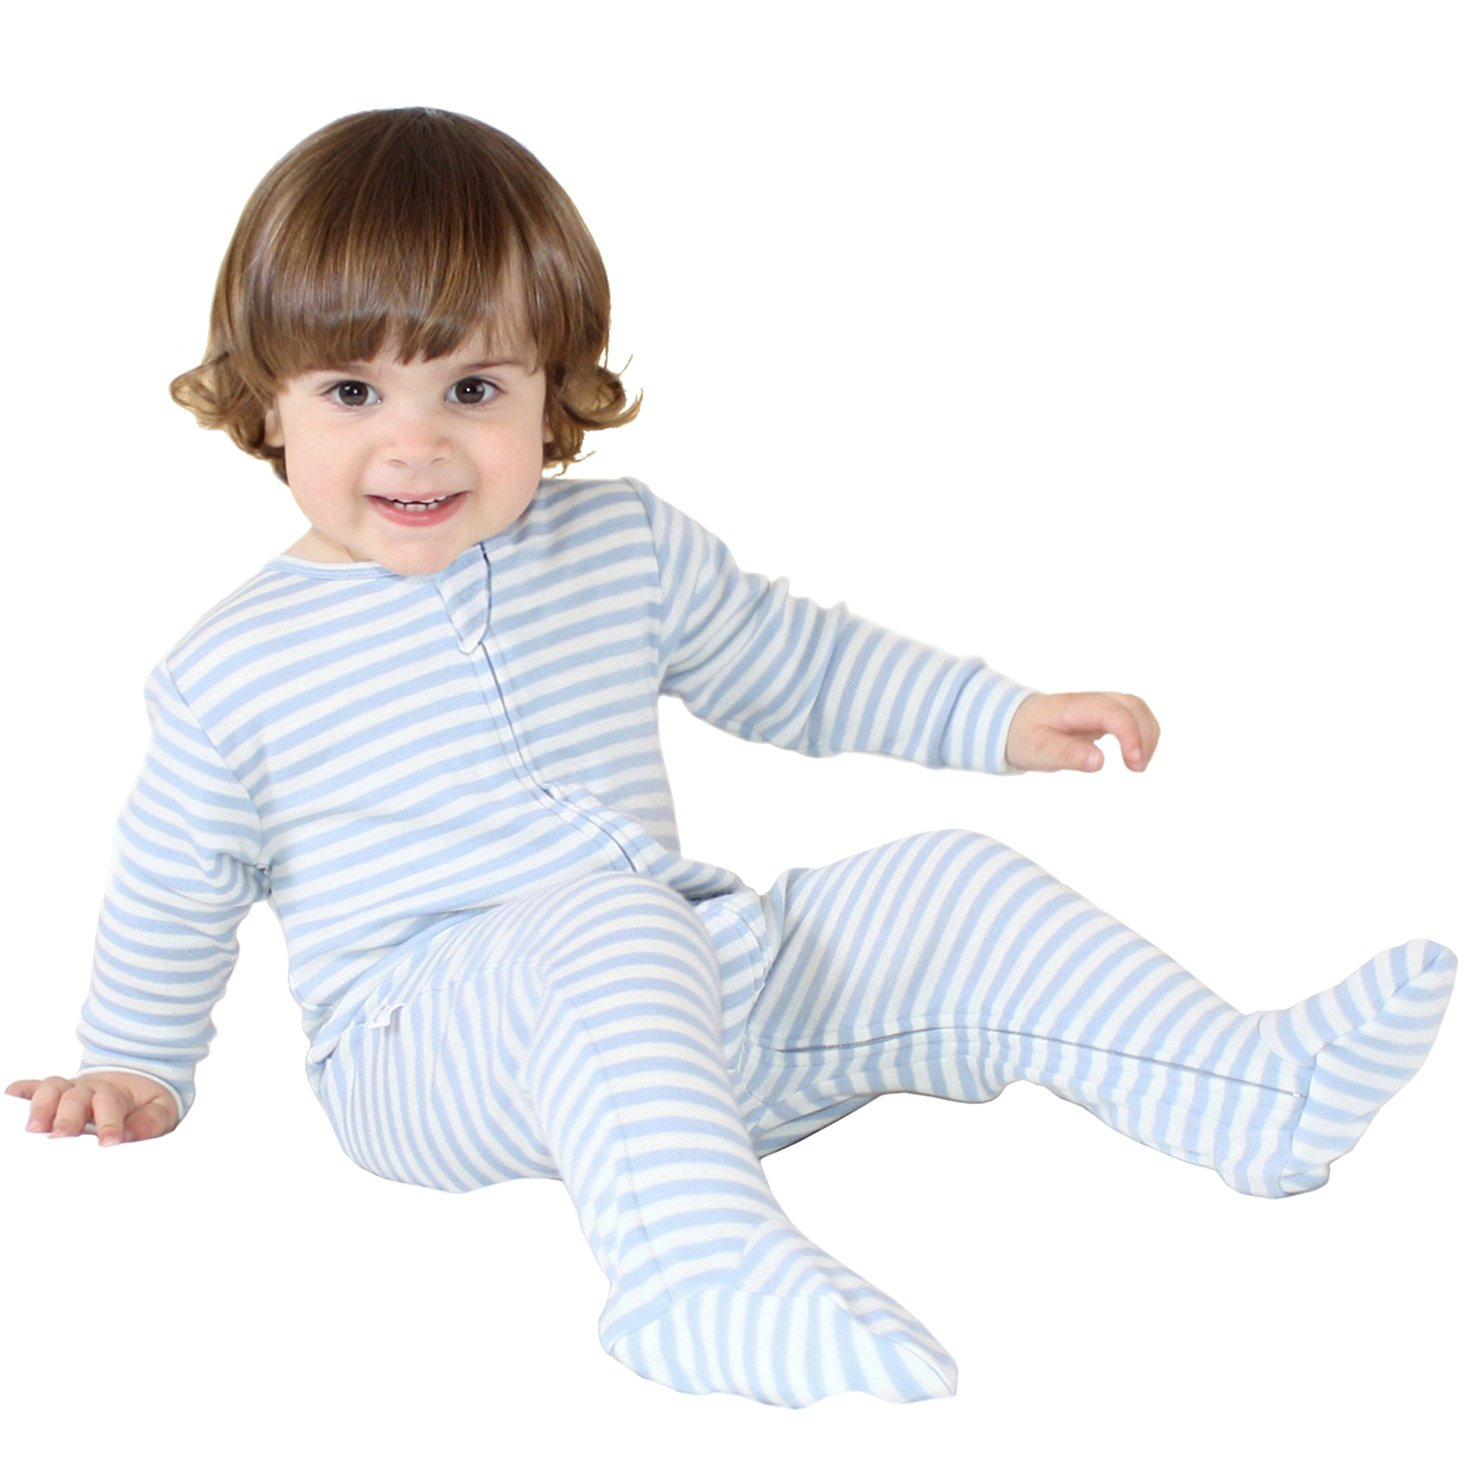 Woolino Baby Boys Footie Pajama Sleeper, Merino Wool, 3-6 Months, Blue Sleeper0-3moBlue